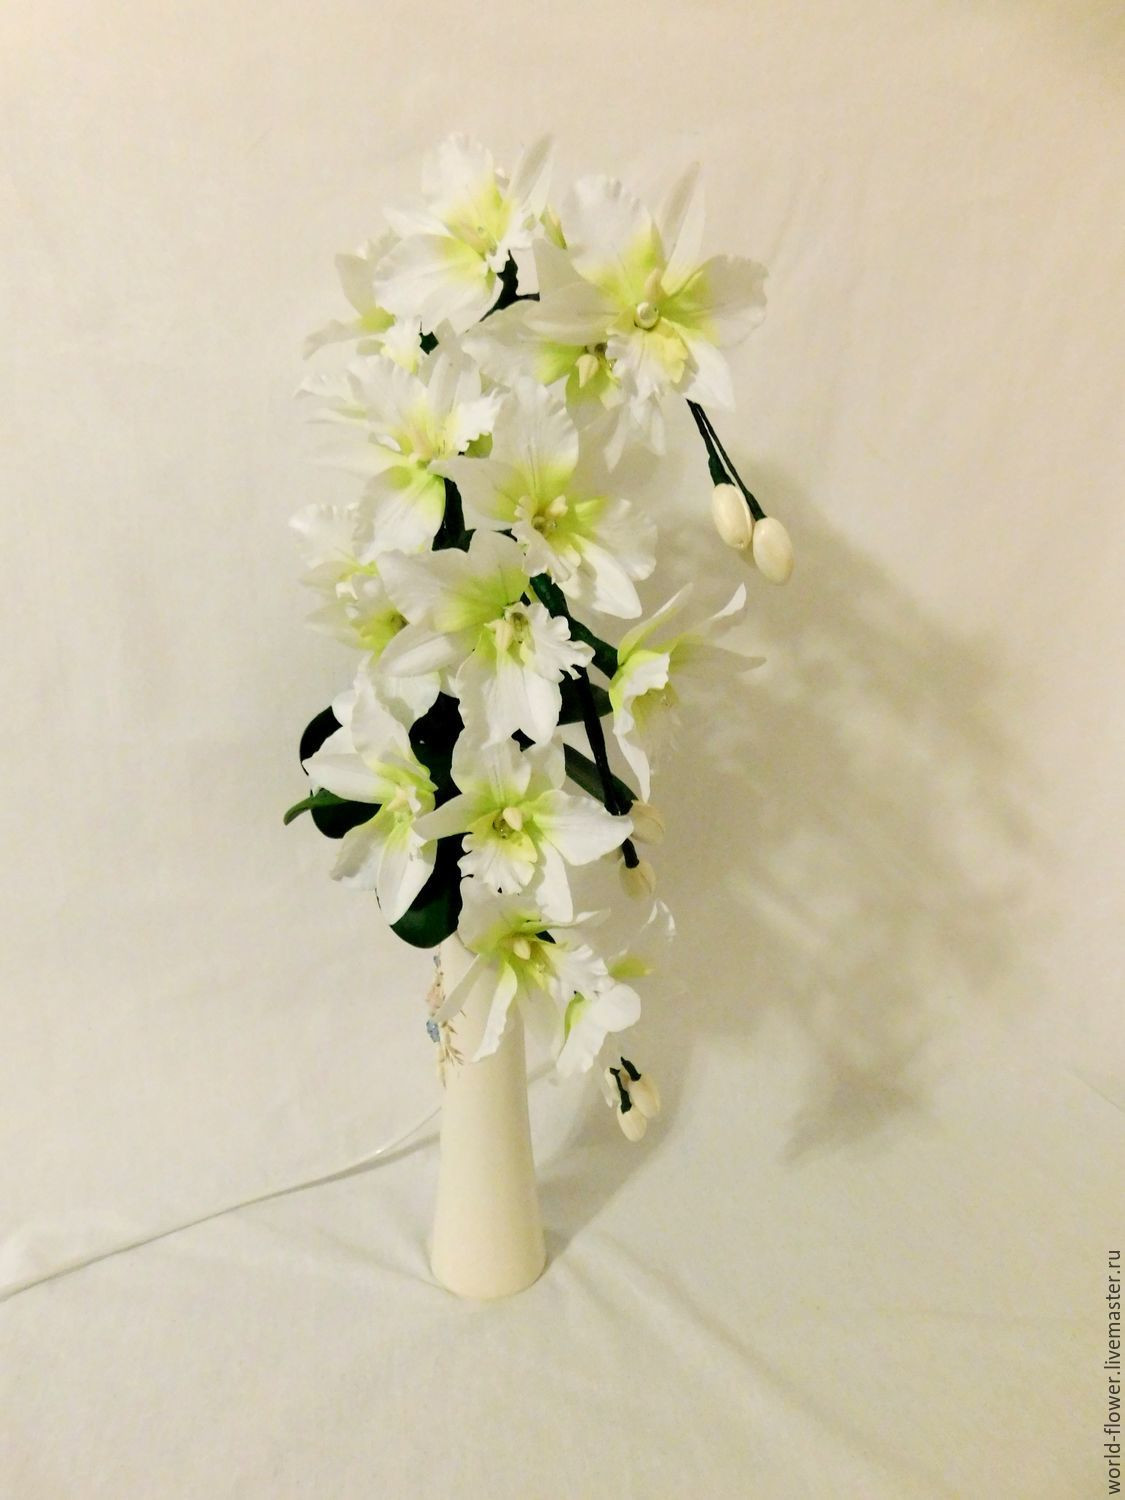 Orchid with Vase Of Bouquet Lamp White orchid 3 Twigs Vase Swan Shop Online On Throughout Bouquet Lamp White orchid 3 Twigs Vase Swan